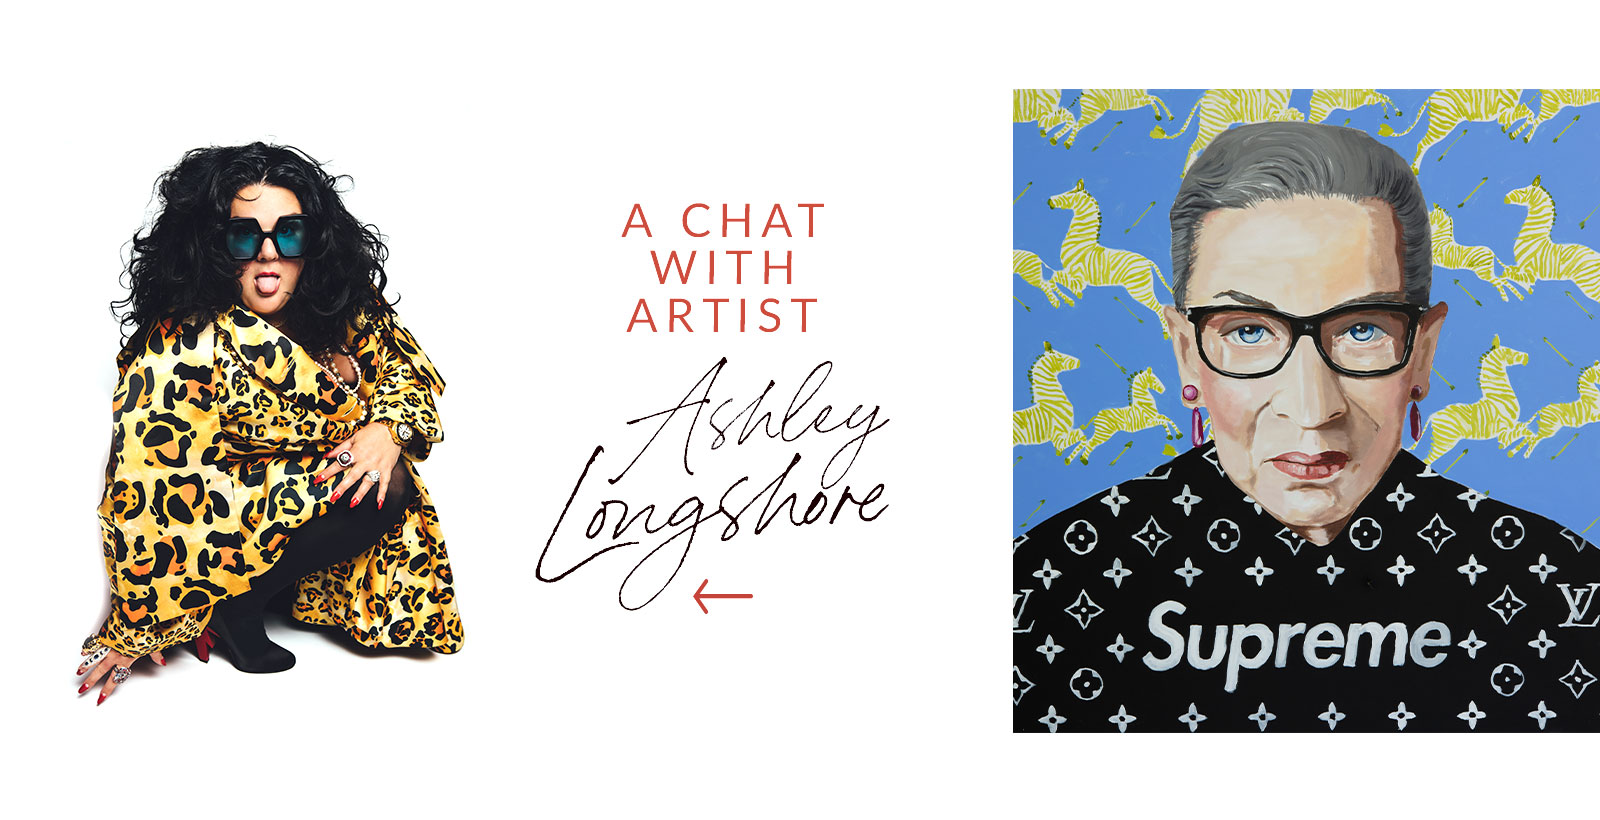 A Chat with Artist Ashley Longshore